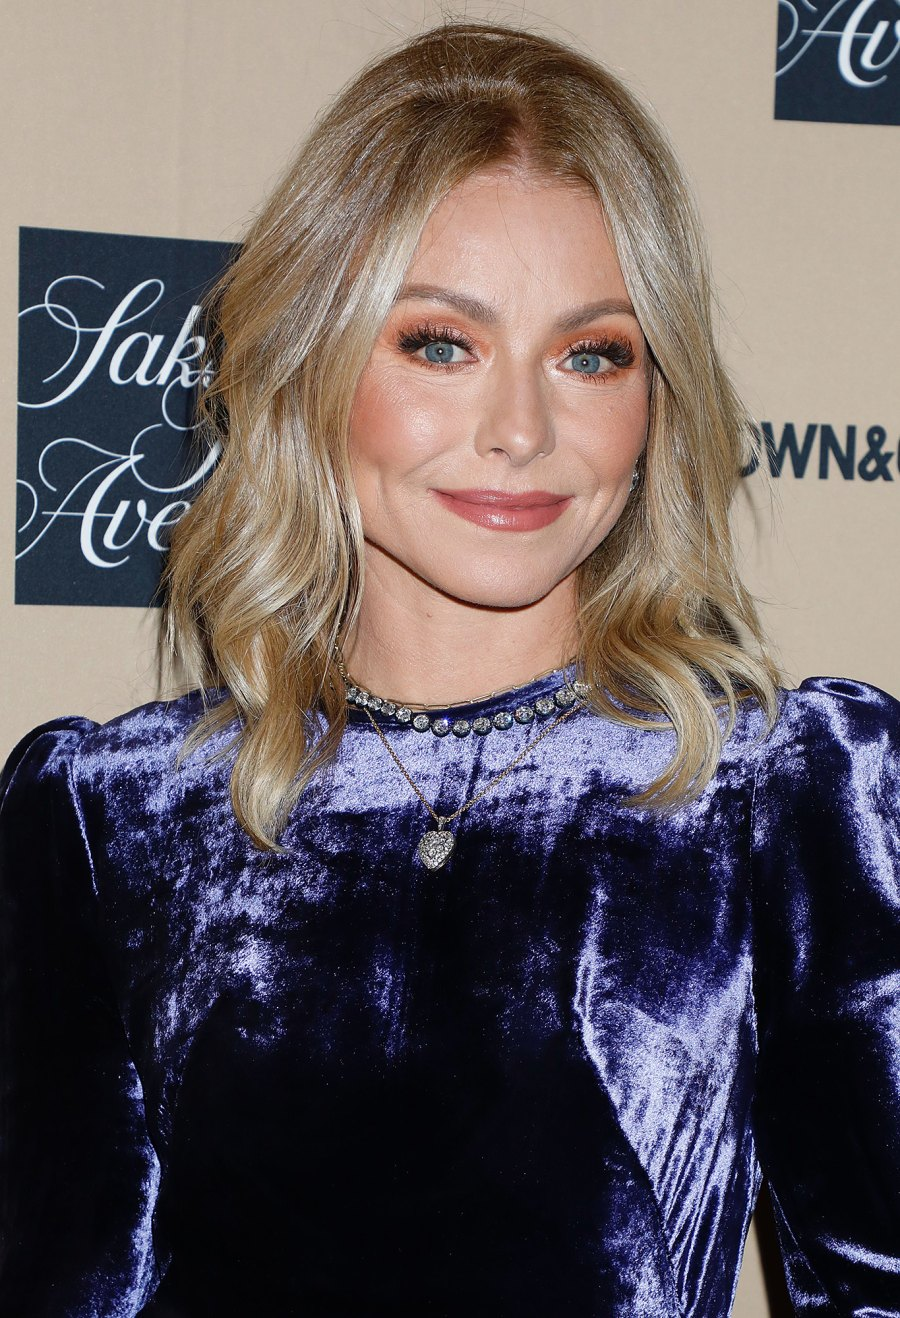 Kelly-Ripa-doesn't-drink-alcohol